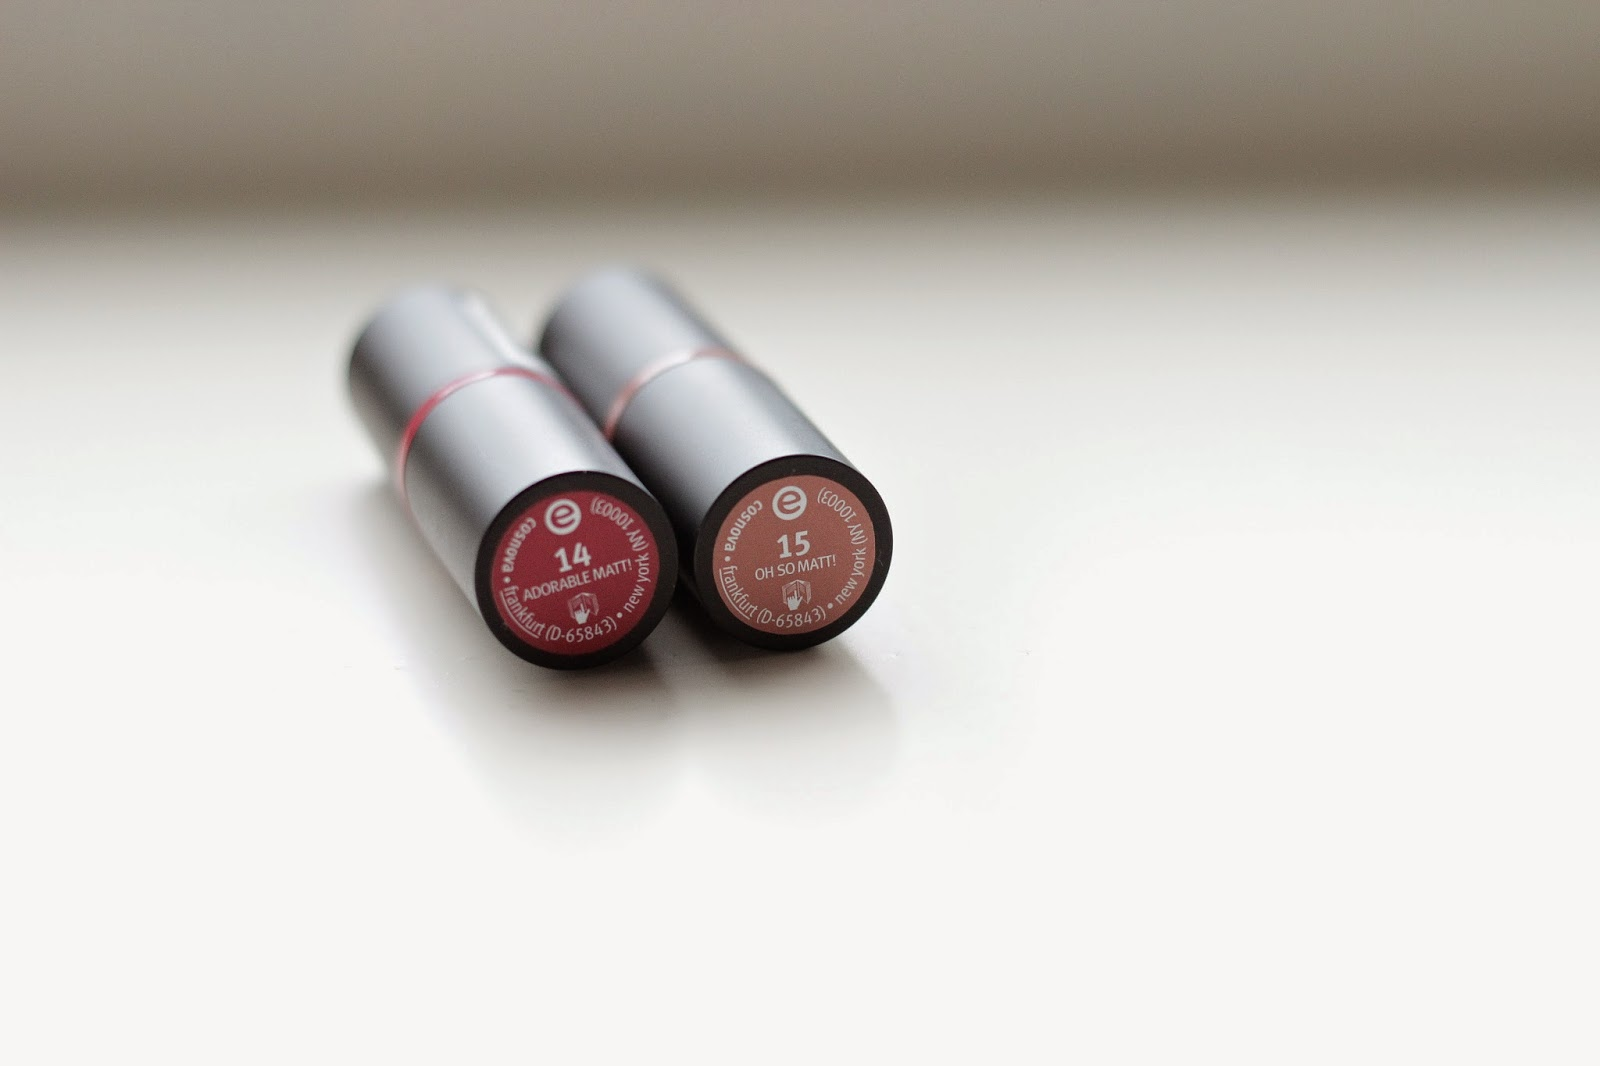 review swatches essence longlasting lipstick 14 Adorable Matt  15 Oh So Matt